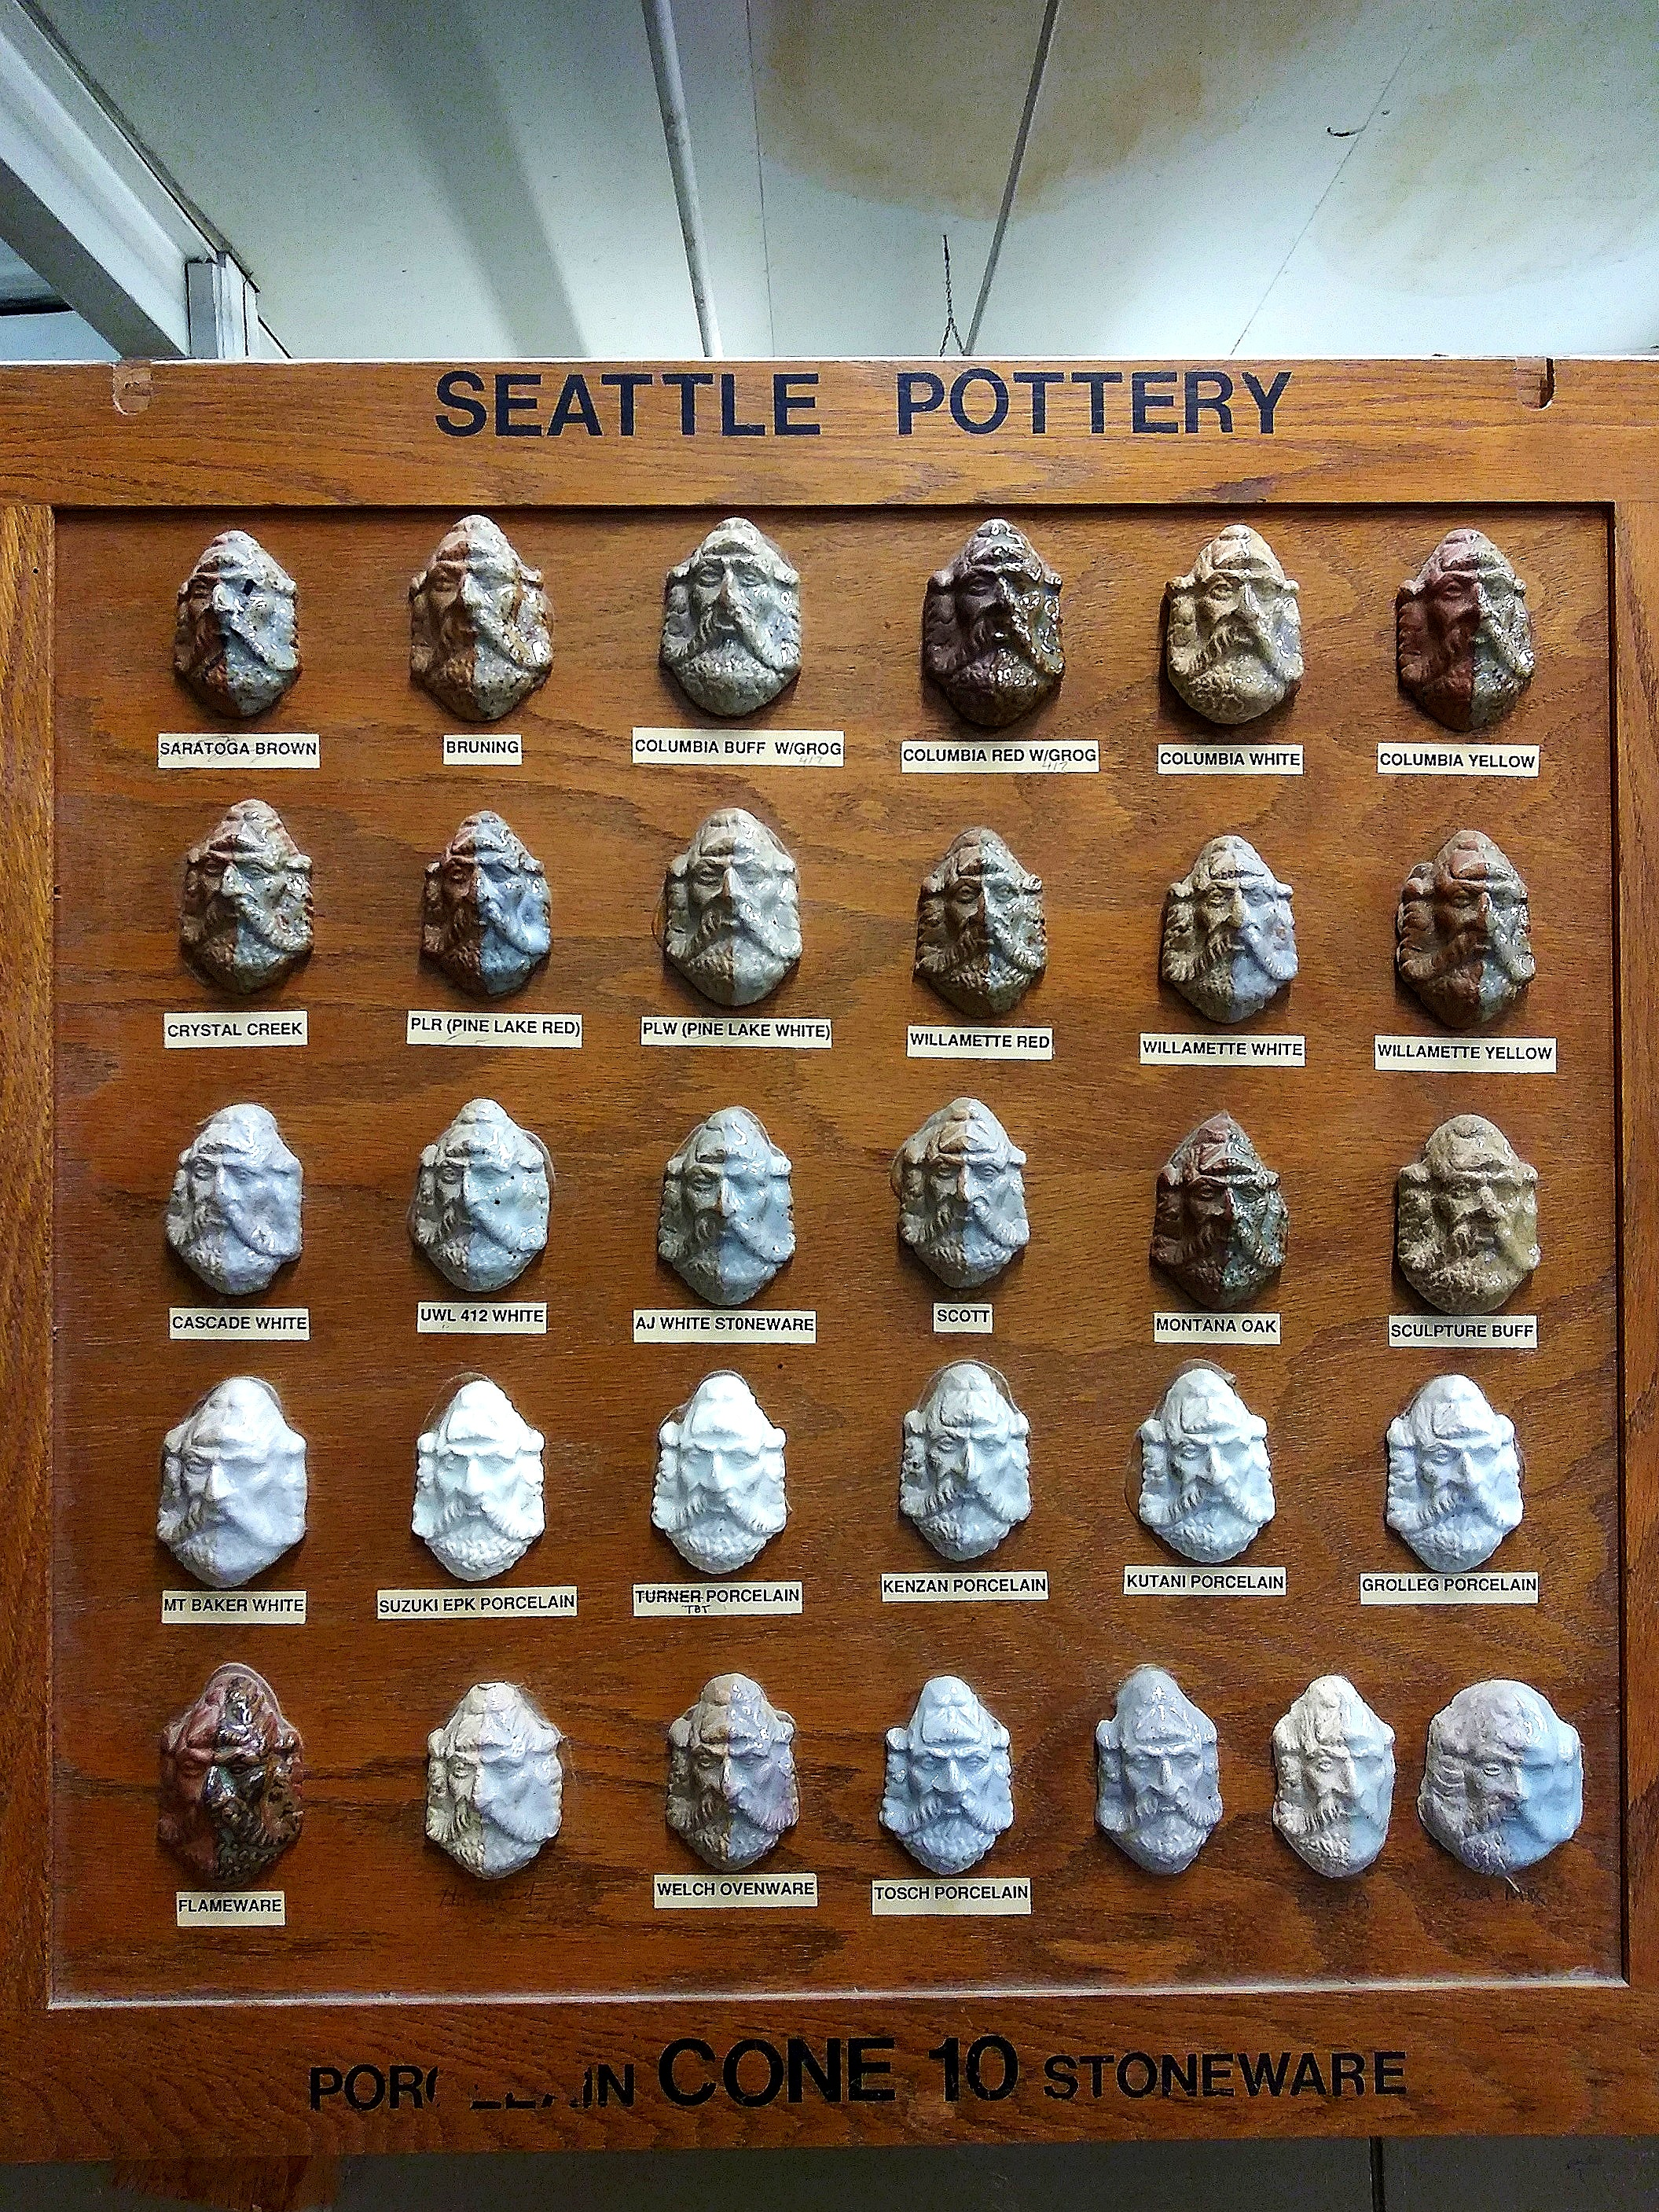 Seattle+Pottery+Supply+Inc.++Regional+low+fire%2C+mid-fire%2C+and+high+fire+clays+from+the+Pacific+Northwest.++Little+Clay+Studio+visits+Seattle%2C+Washington.jpg